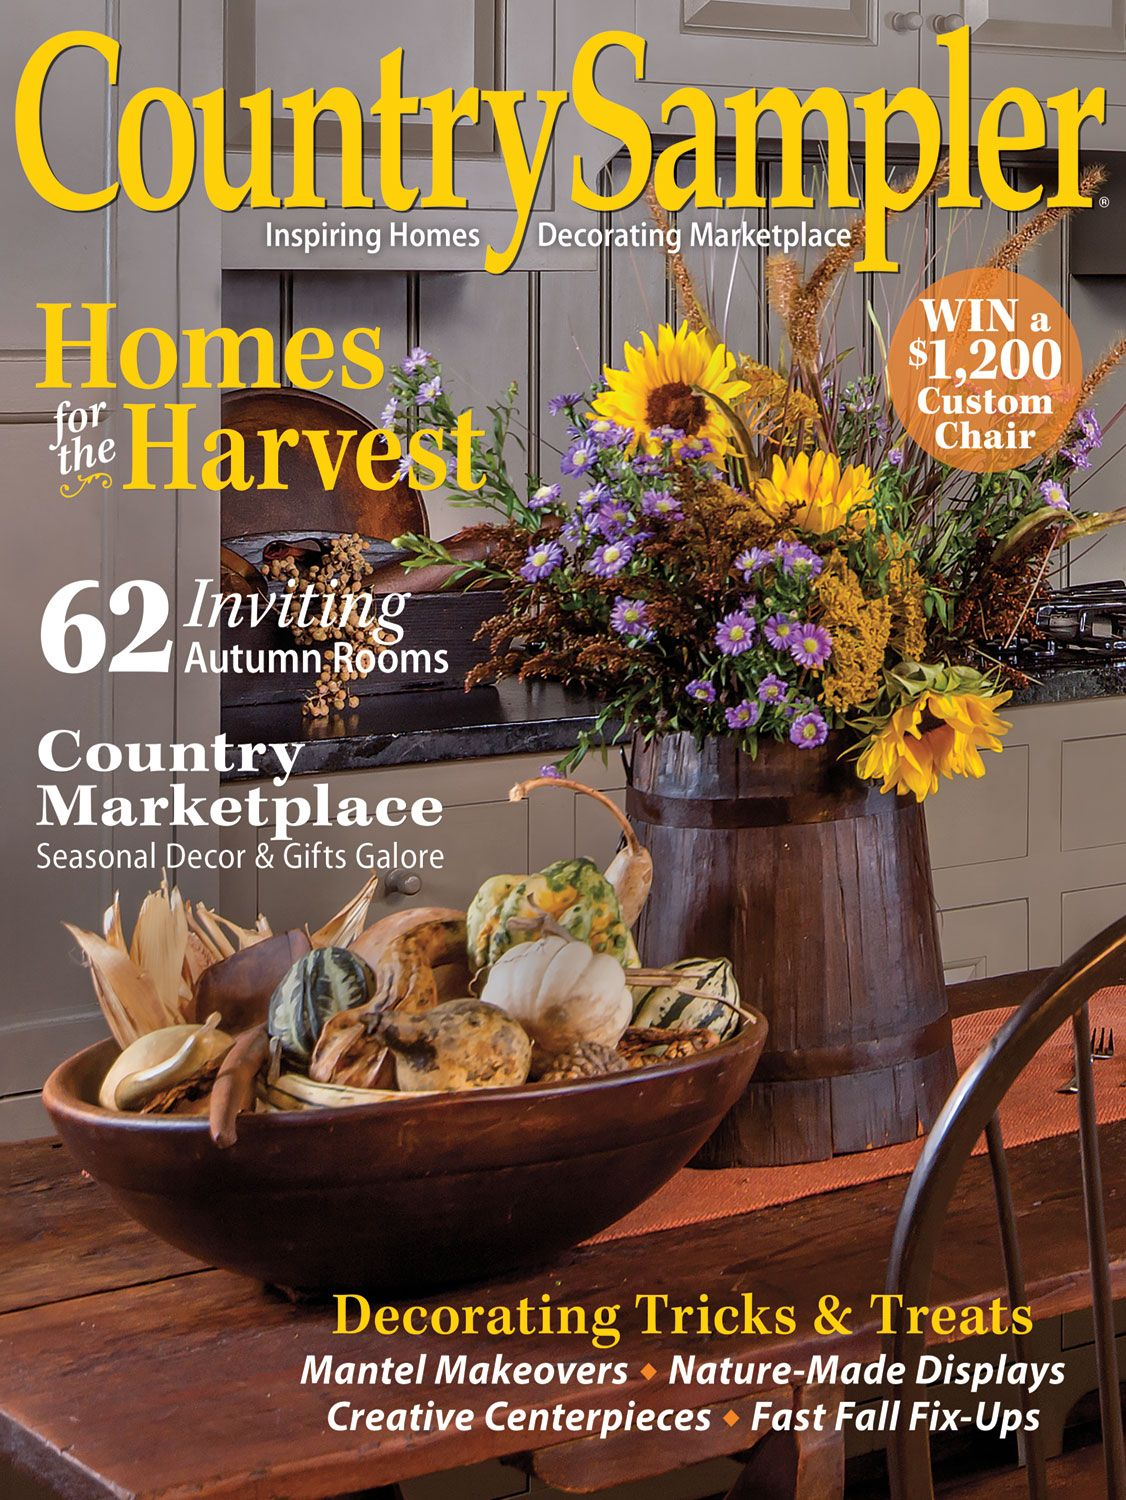 September Decorating Ideas Brilliant Our September Issue Is Chockfull Of Great Fall Decorating Ideas . Design Decoration